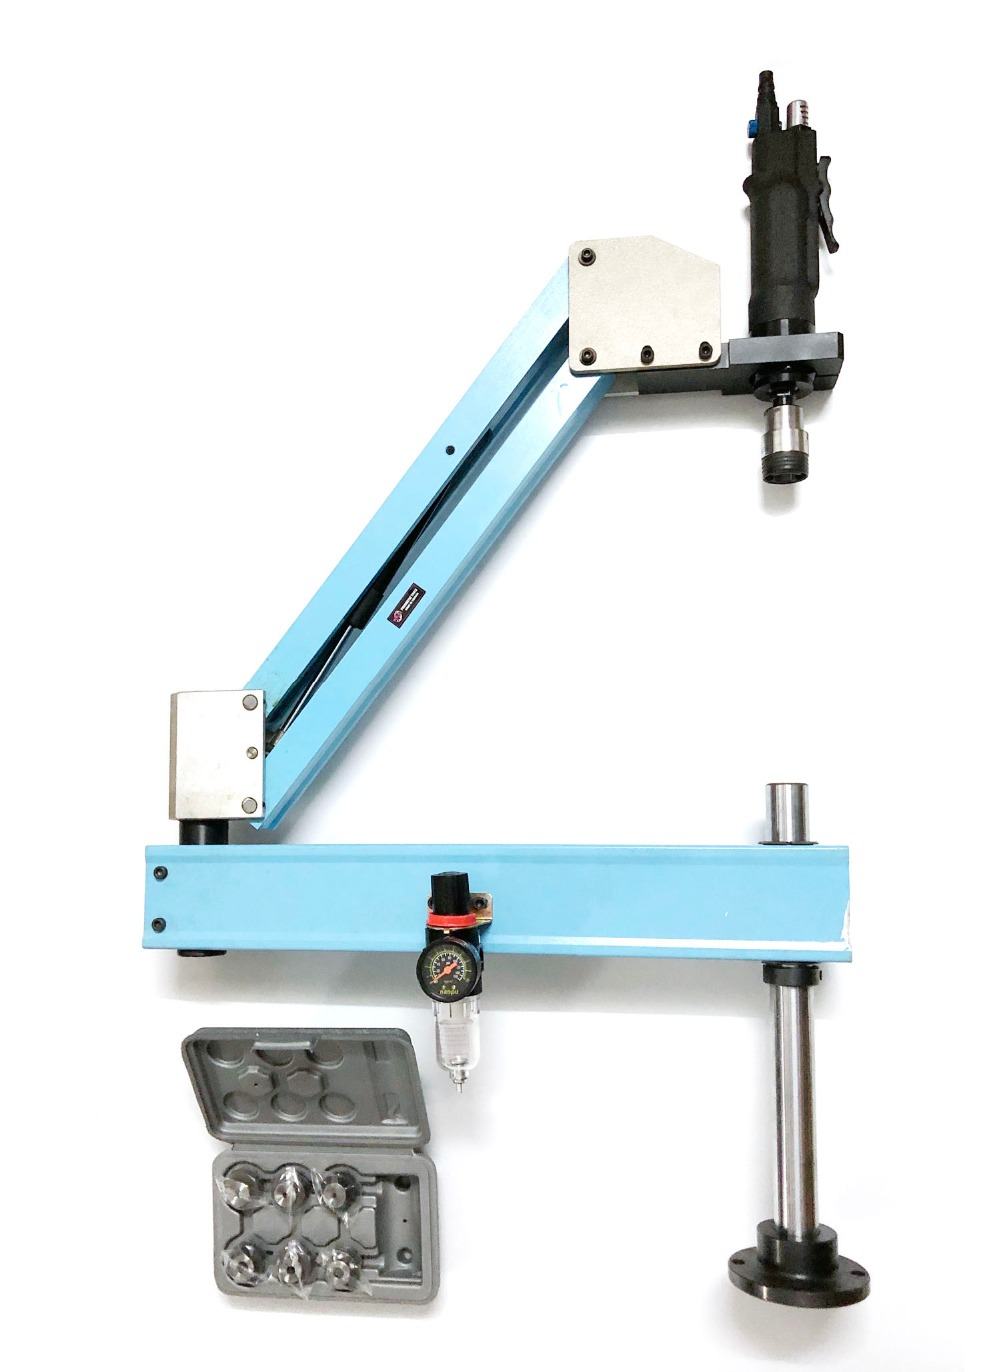 M3-M12 Vertical Type Pneumatic Air Tapping Tool Machine-working Taps Threading Machine Tapping Capacity Pneumatic Tapper Tools high quality at 012 l m3 m12 automatic pneumatic tapping machine air tapper tool with work reach 1900mm